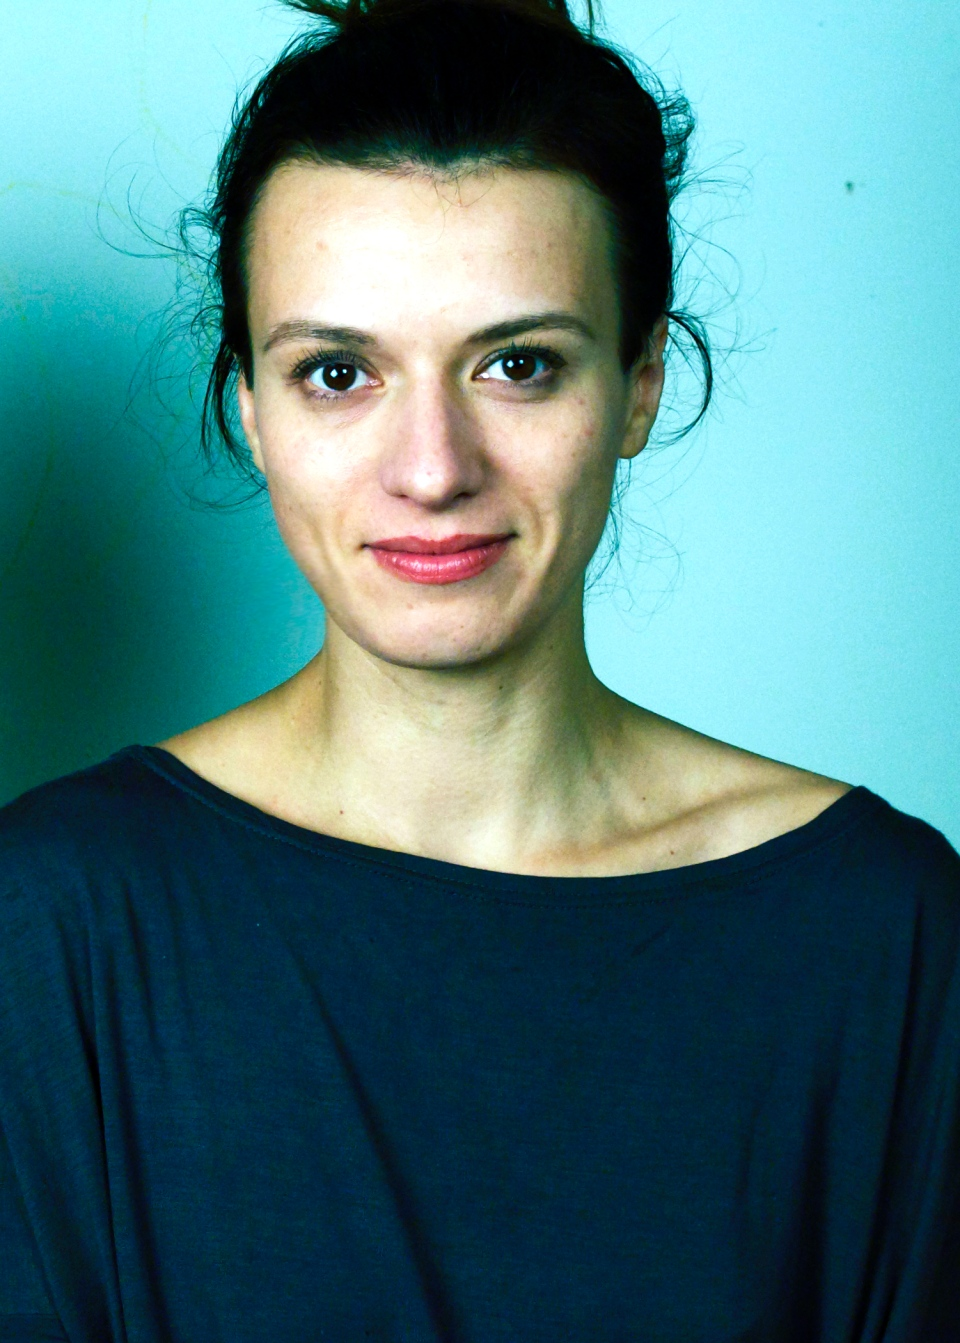 Jowita Bydlowska appears in this undated handout photo. (Credit: Laura Bydlowska)